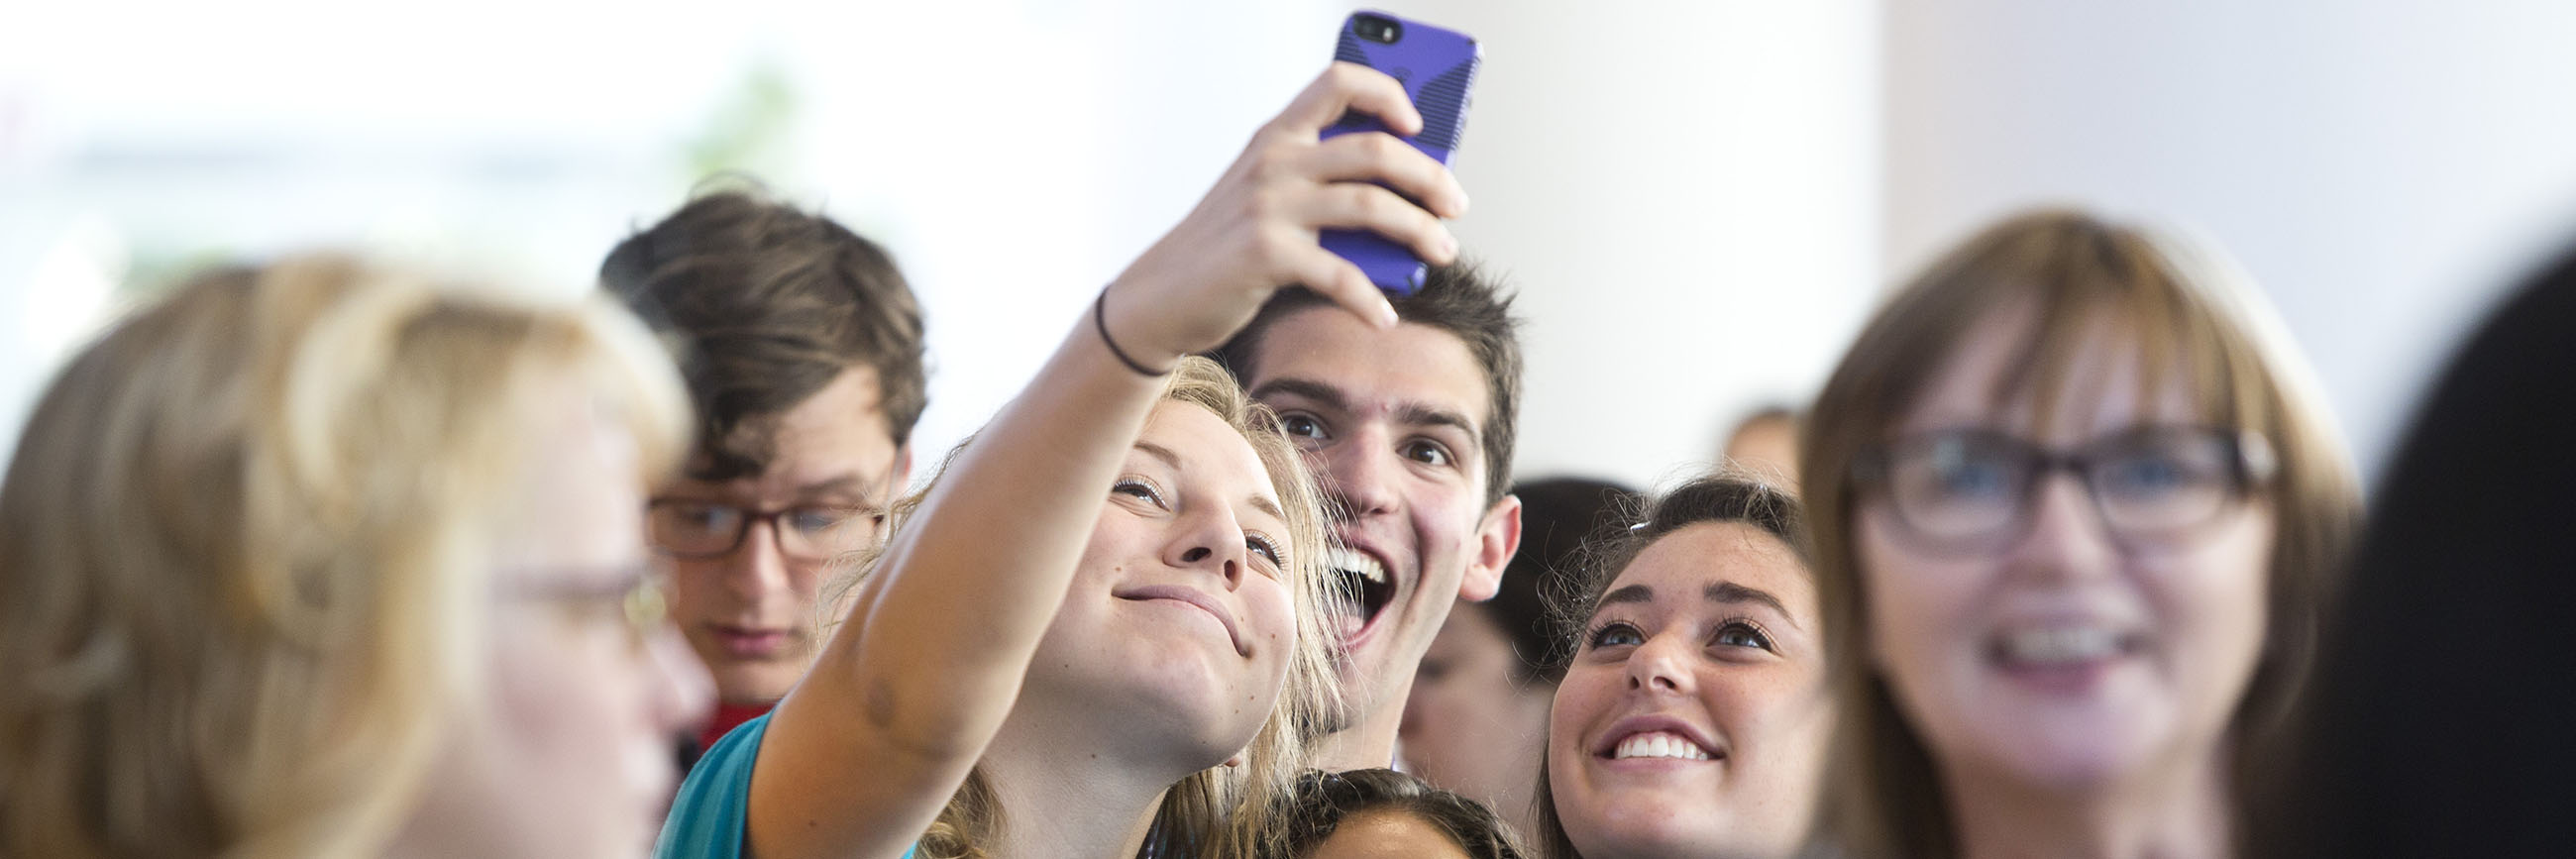 Student smiling and taking a selfie in a group.